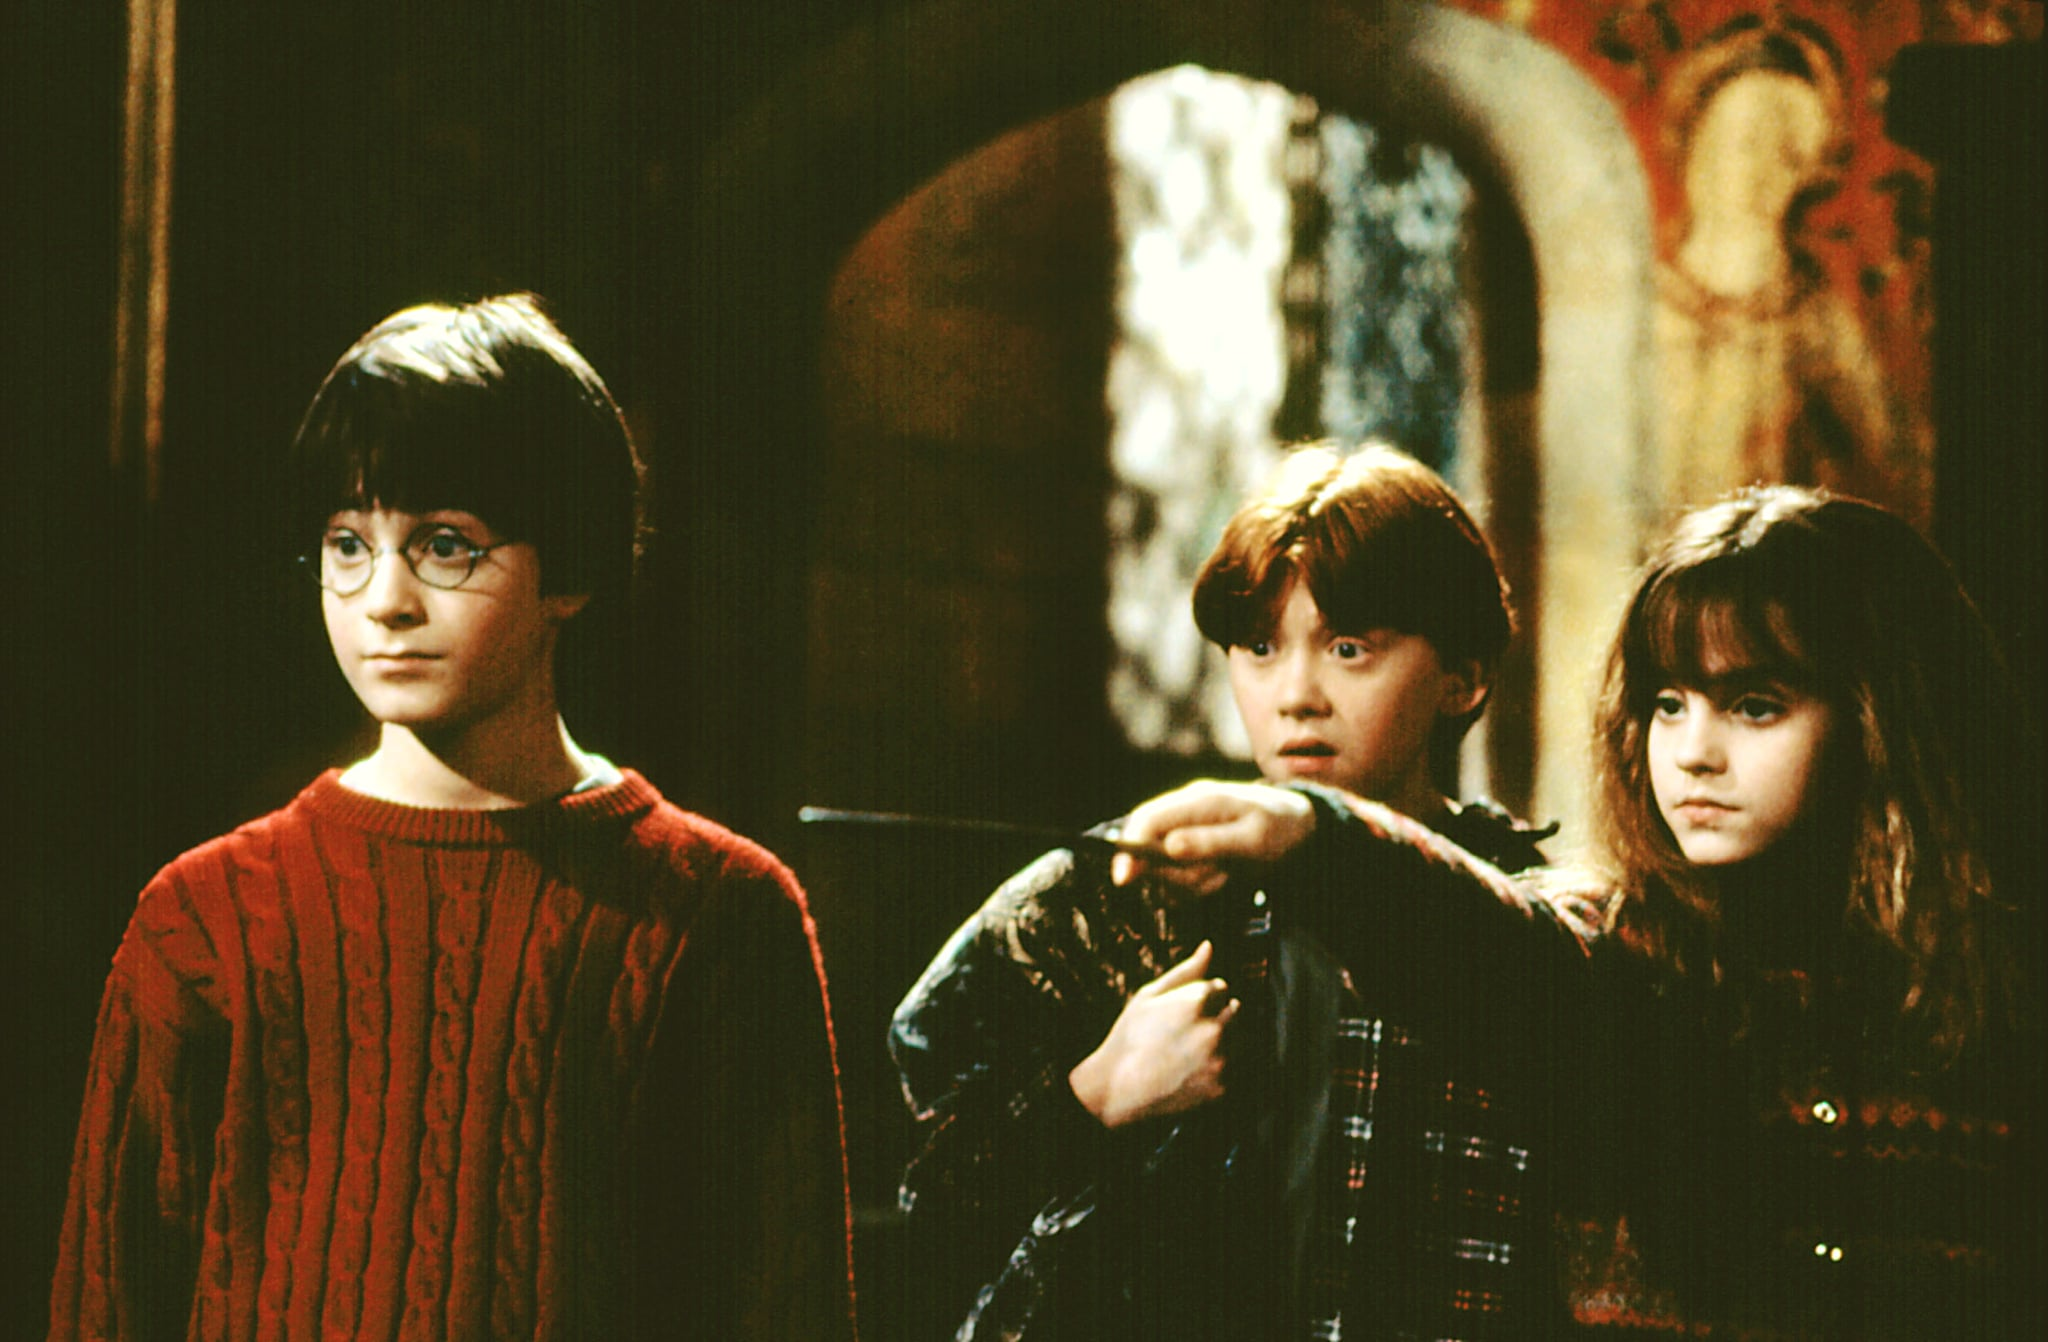 HARRY POTTER AND THE SORCERER'S STONE, Daniel Radcliffe, Rupert Grint, Emma Watson, 2001